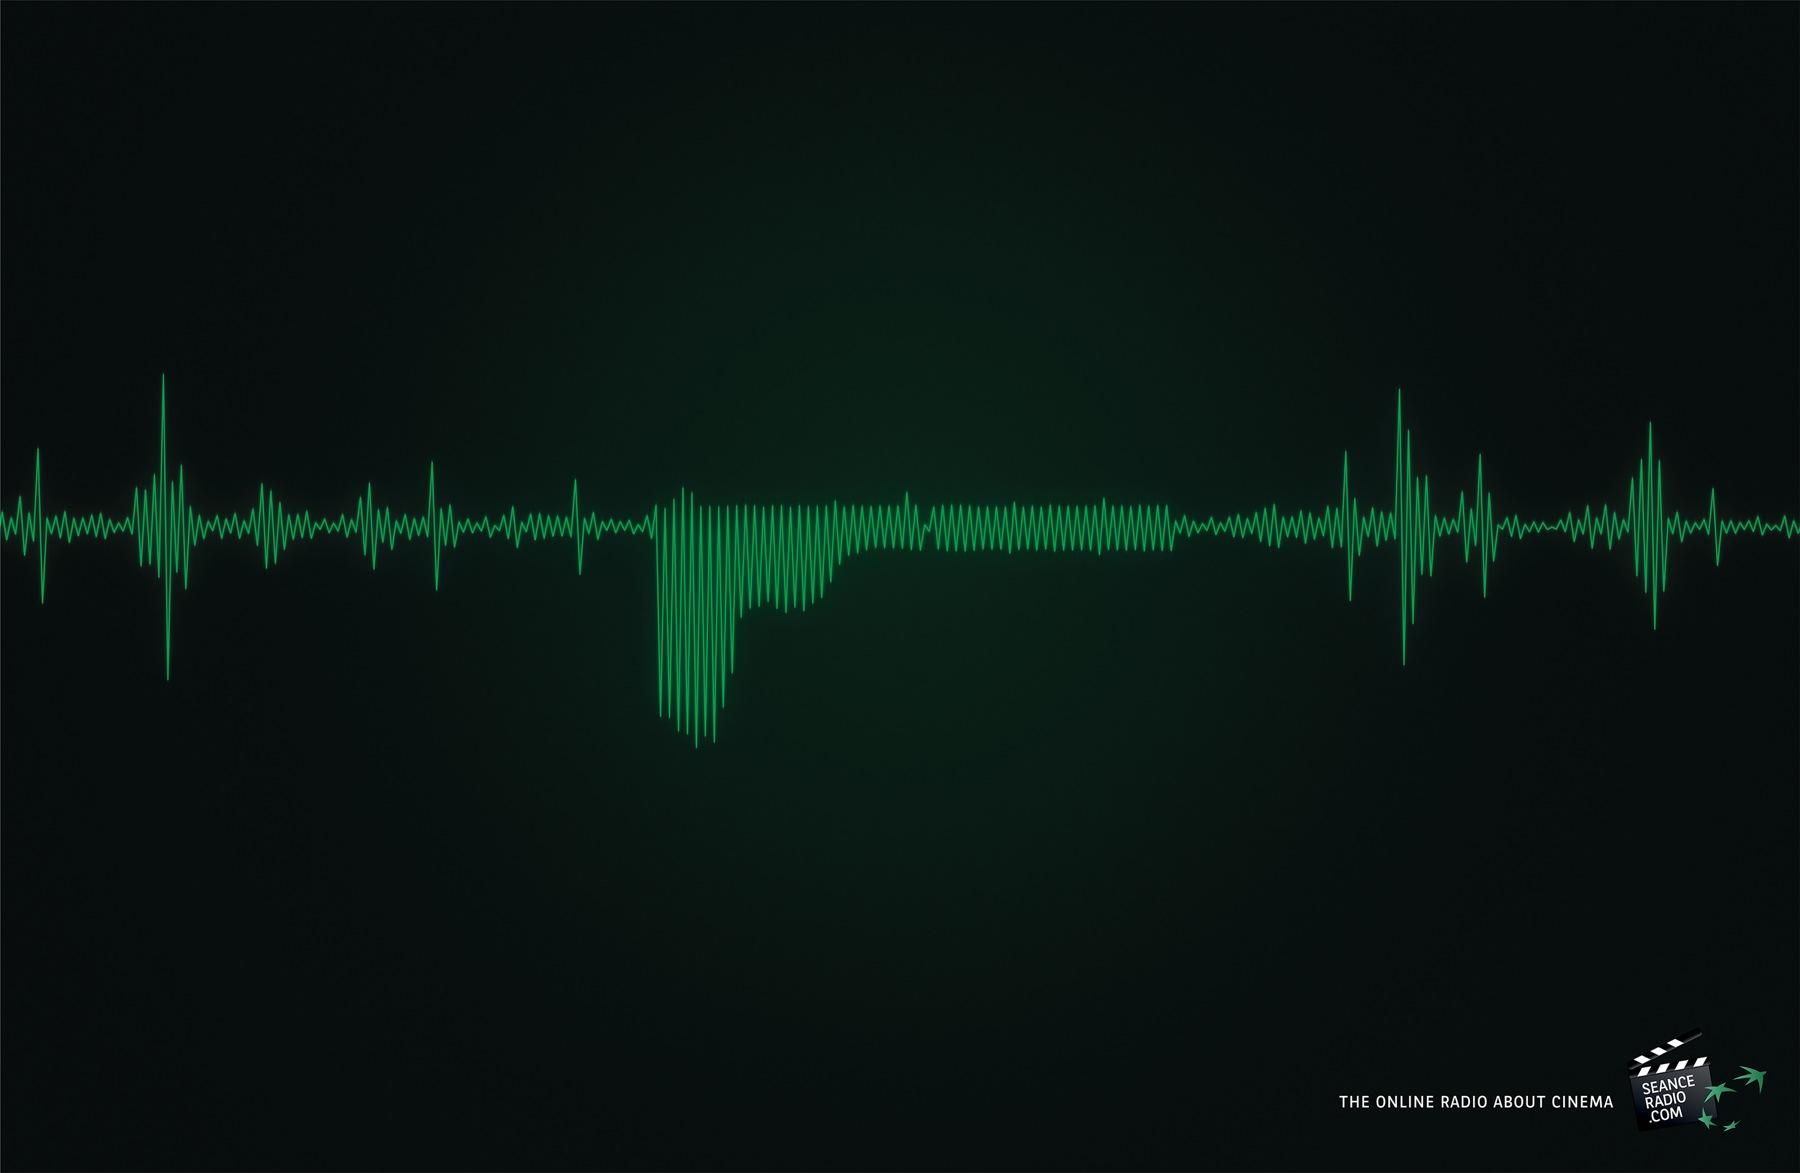 SeanceRadio.com Print Ad -  James Bond